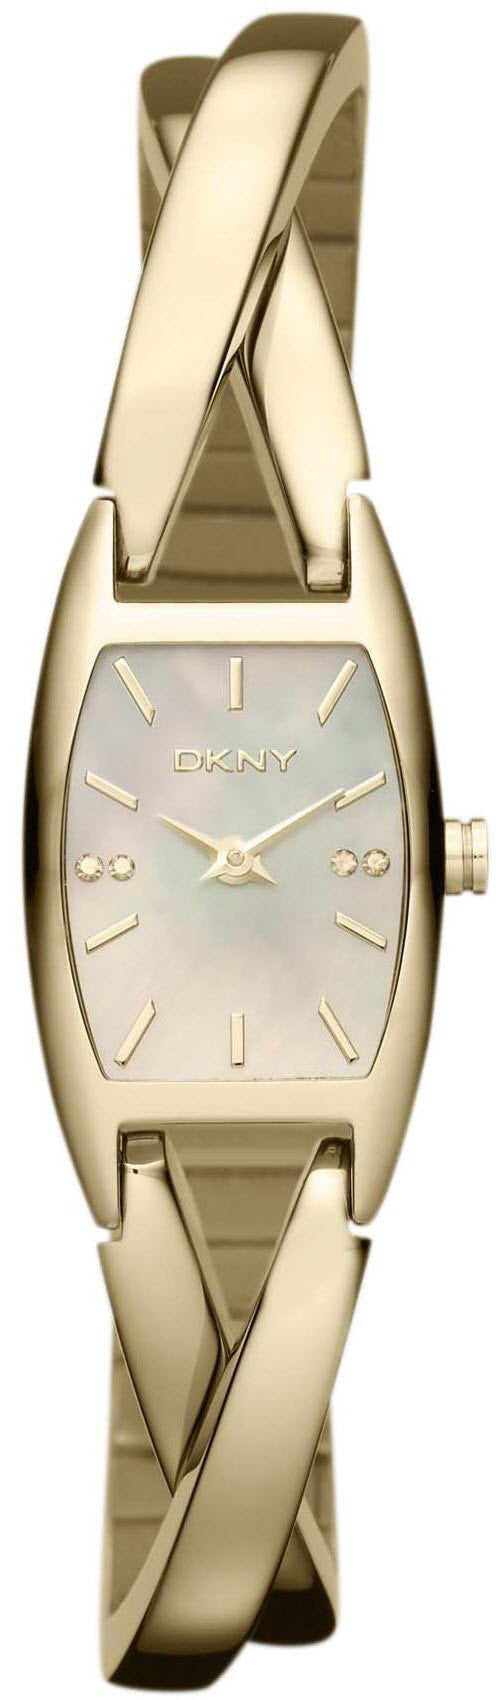 DKNY Watch Crosby Ladies D